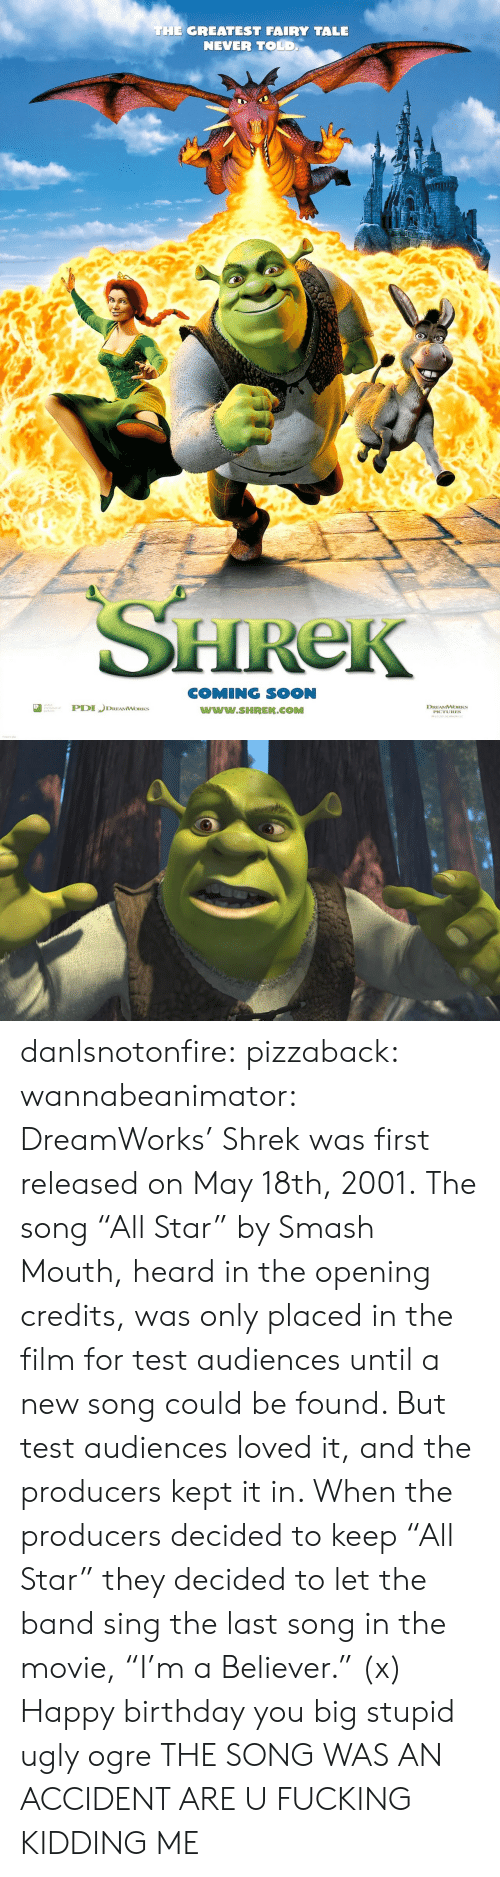 """the band: THE GREATEST FAIRY TALE  NEVER TOLD  HReK  COMING SOON  www.SHREK.COMM  ted  DREAMWORKS danlsnotonfire: pizzaback:   wannabeanimator:   DreamWorks' Shrek was first released on May 18th, 2001. The song """"All Star"""" by Smash Mouth, heard in the opening credits, was only placed in the film for test audiences until a new song could be found. But test audiences loved it, and the producers kept it in. When the producers decided to keep """"All Star"""" they decided to let the band sing the last song in the movie, """"I'm a Believer."""" (x)   Happy birthday you big stupid ugly ogre   THE SONG WAS AN ACCIDENT ARE U FUCKING KIDDING ME"""